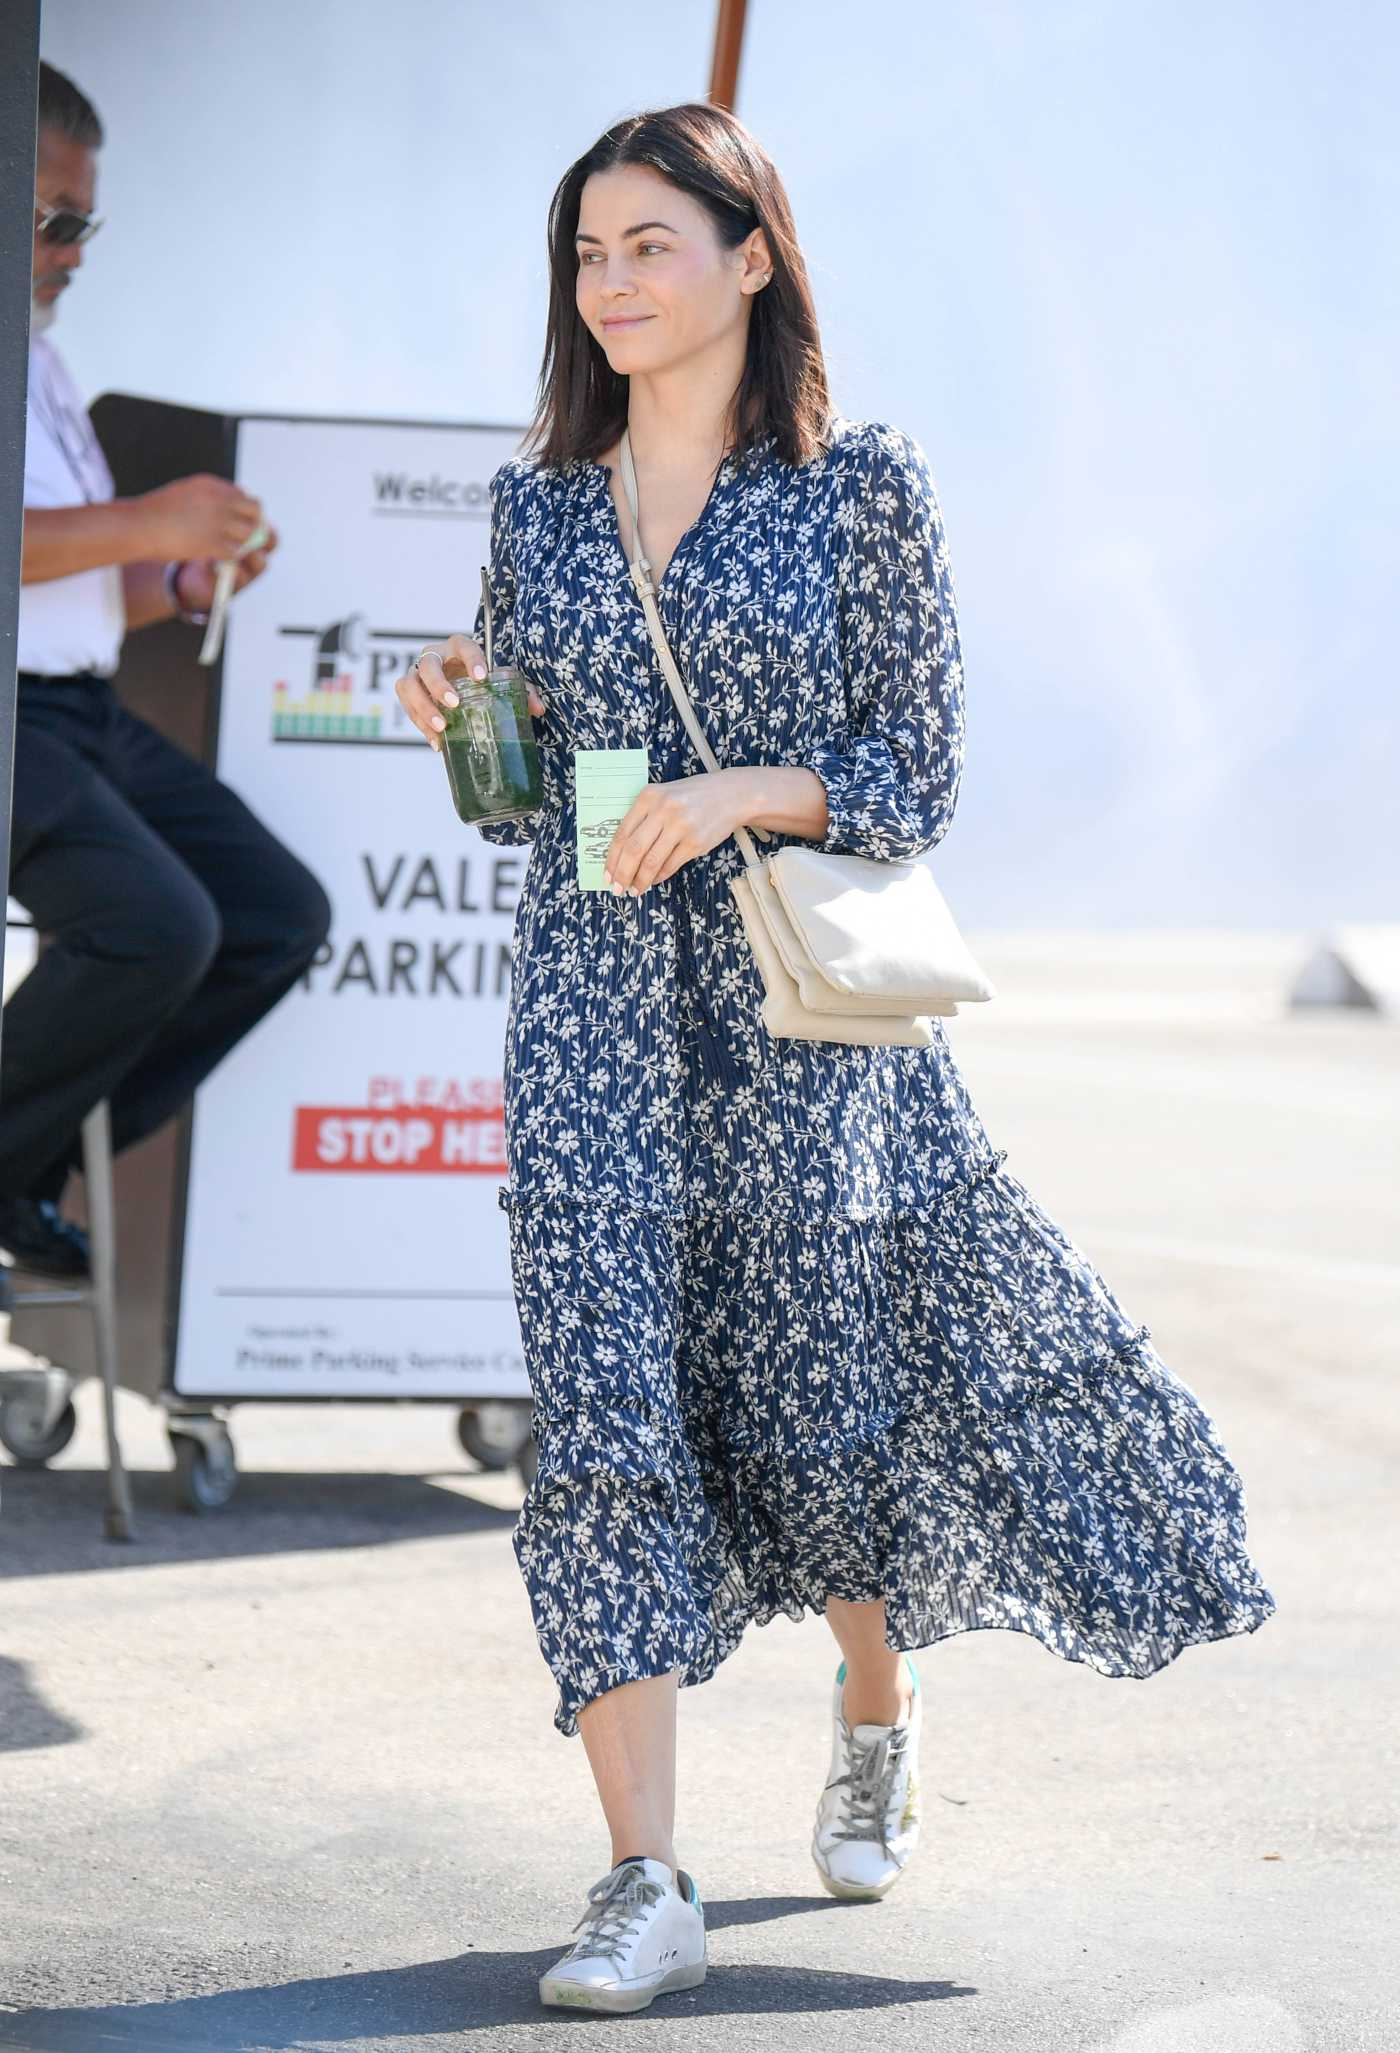 Jenna Dewan in a Gray Floral Dress Was Seen Out in Los Angeles 07/29/2019